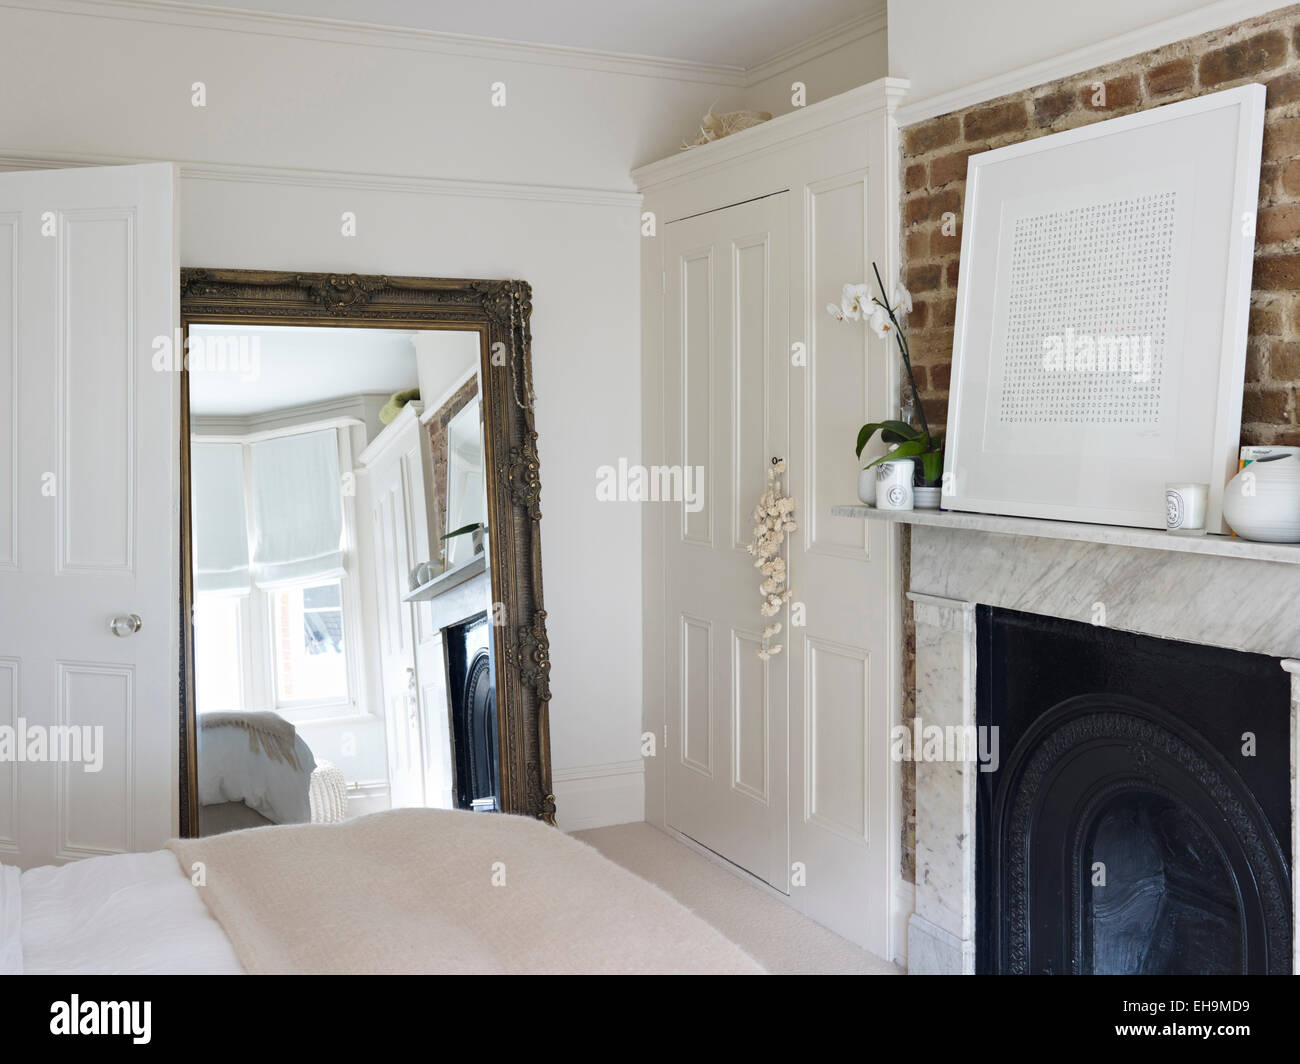 Bedroom with full length mirror, built-in panelled cupboard and ...